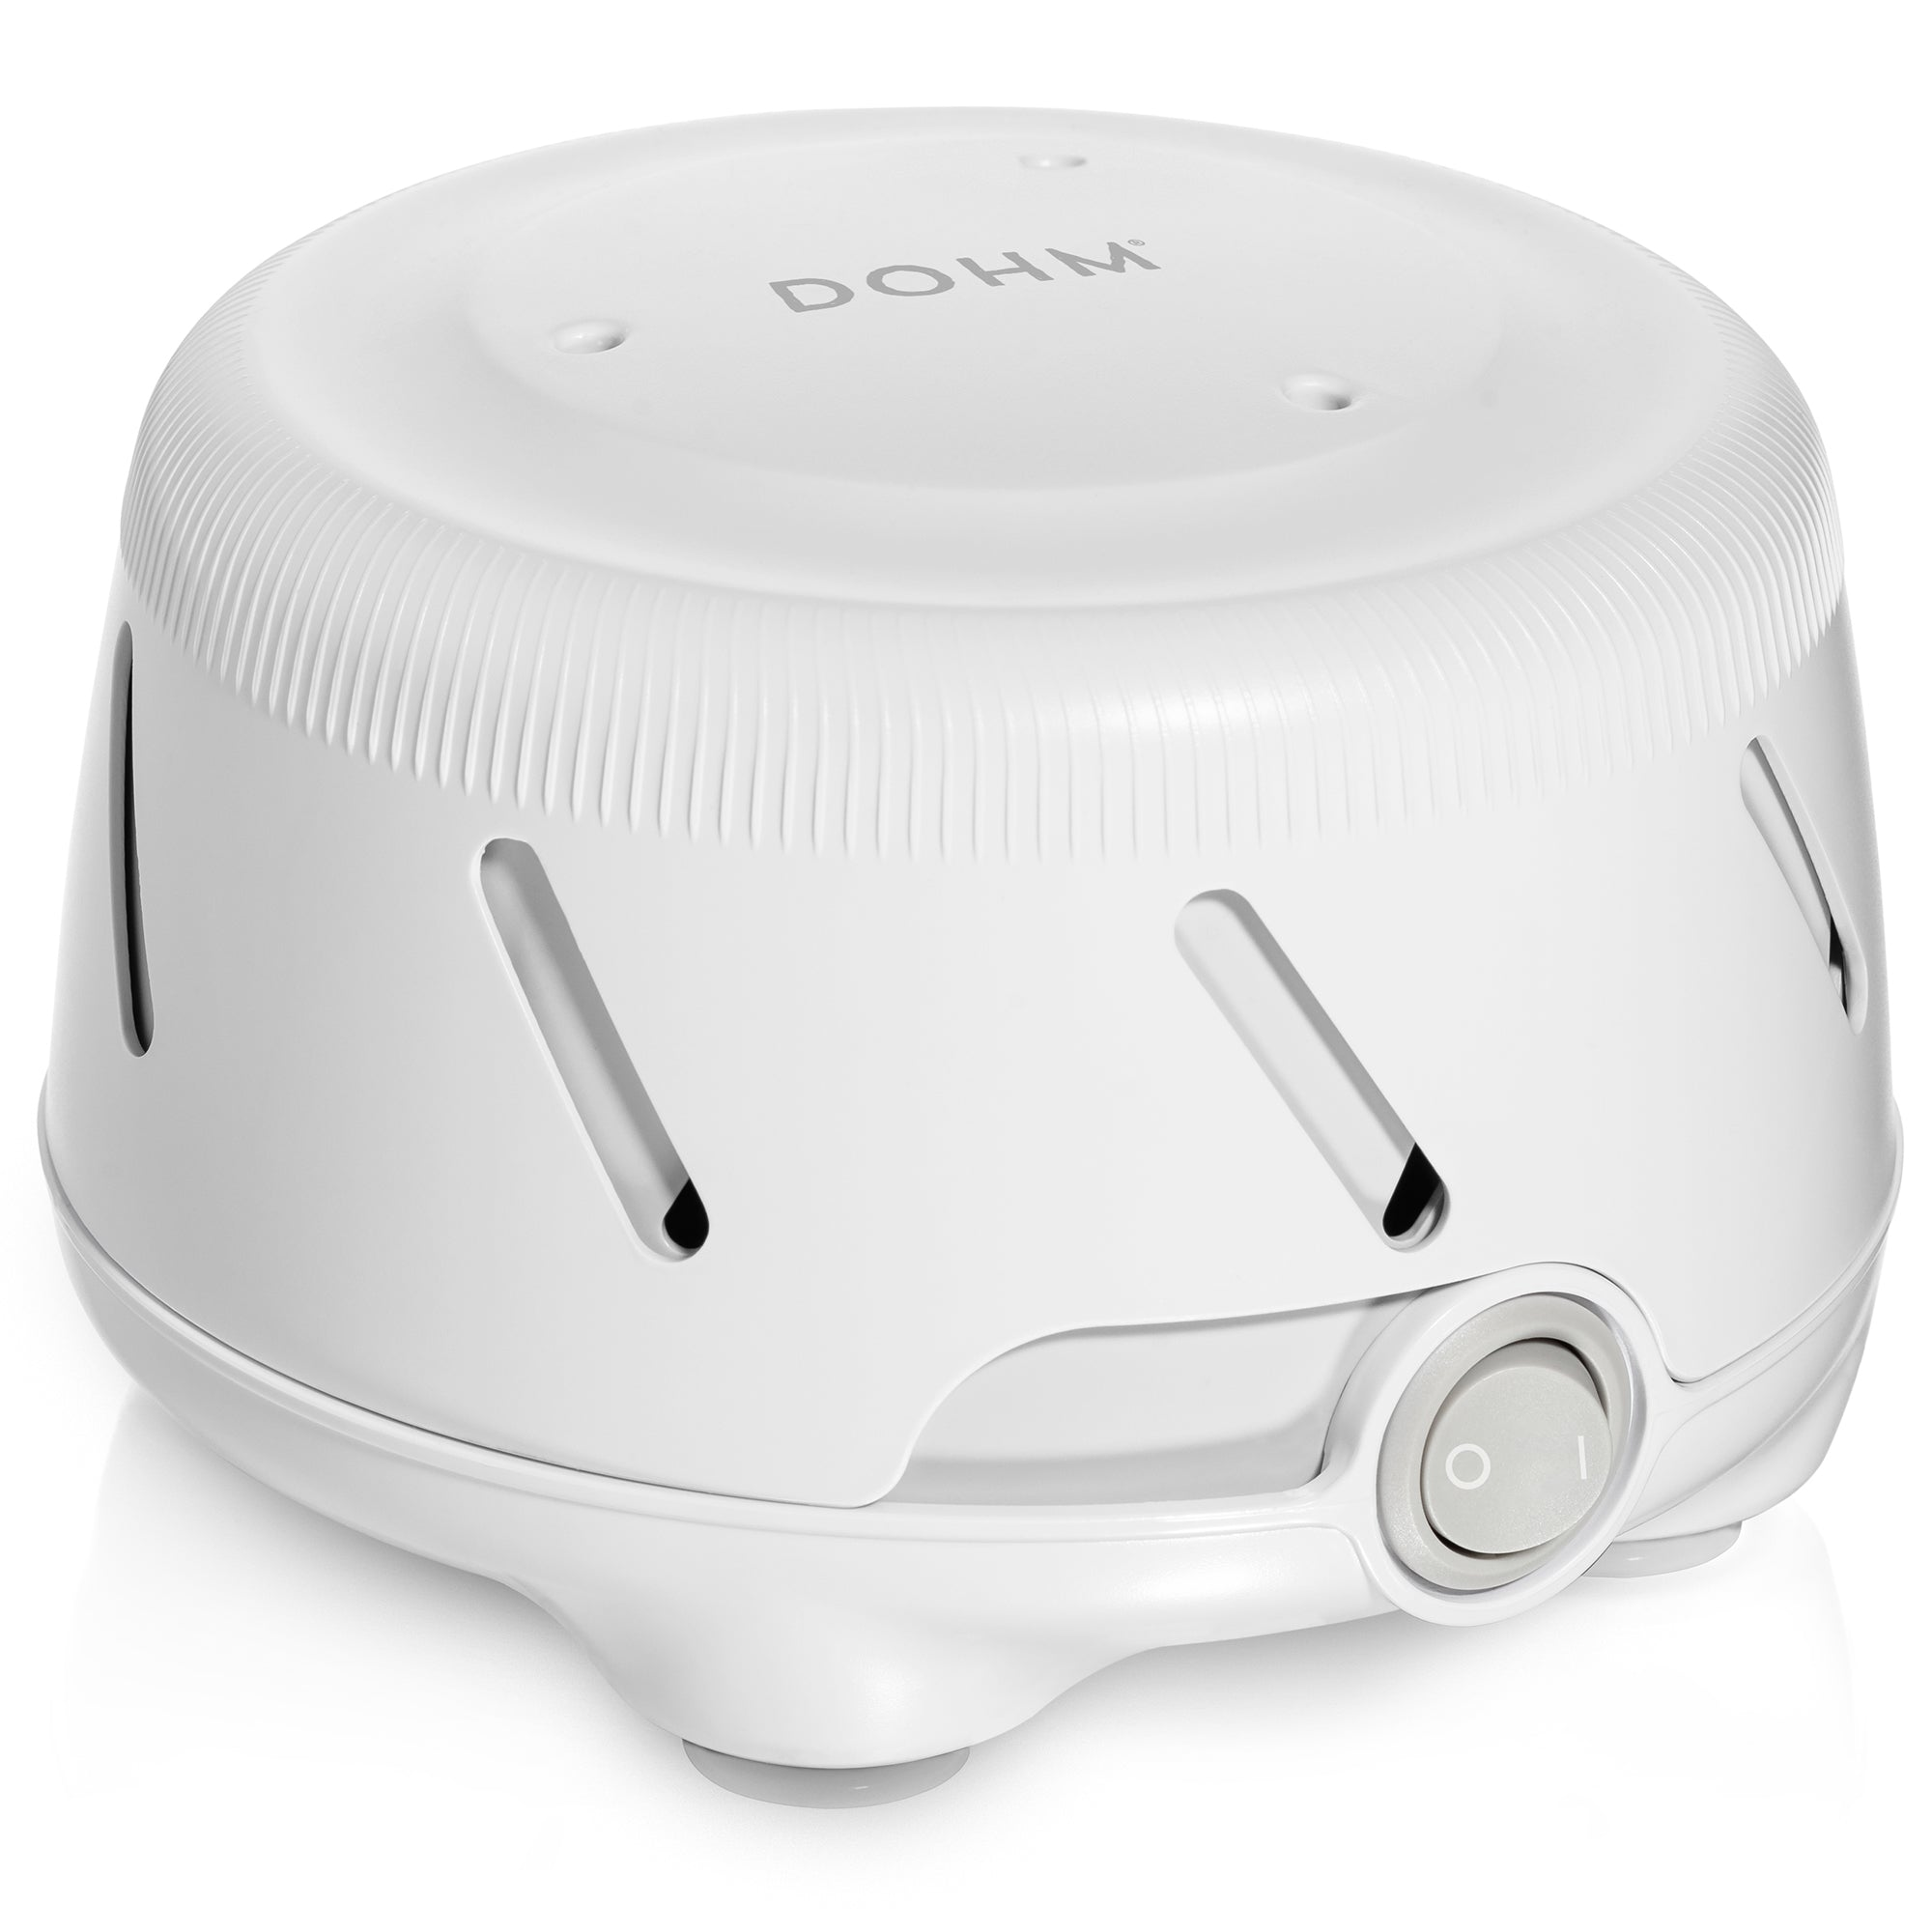 Dohm Uno (White) | Natural Sound Machines | Yogasleep